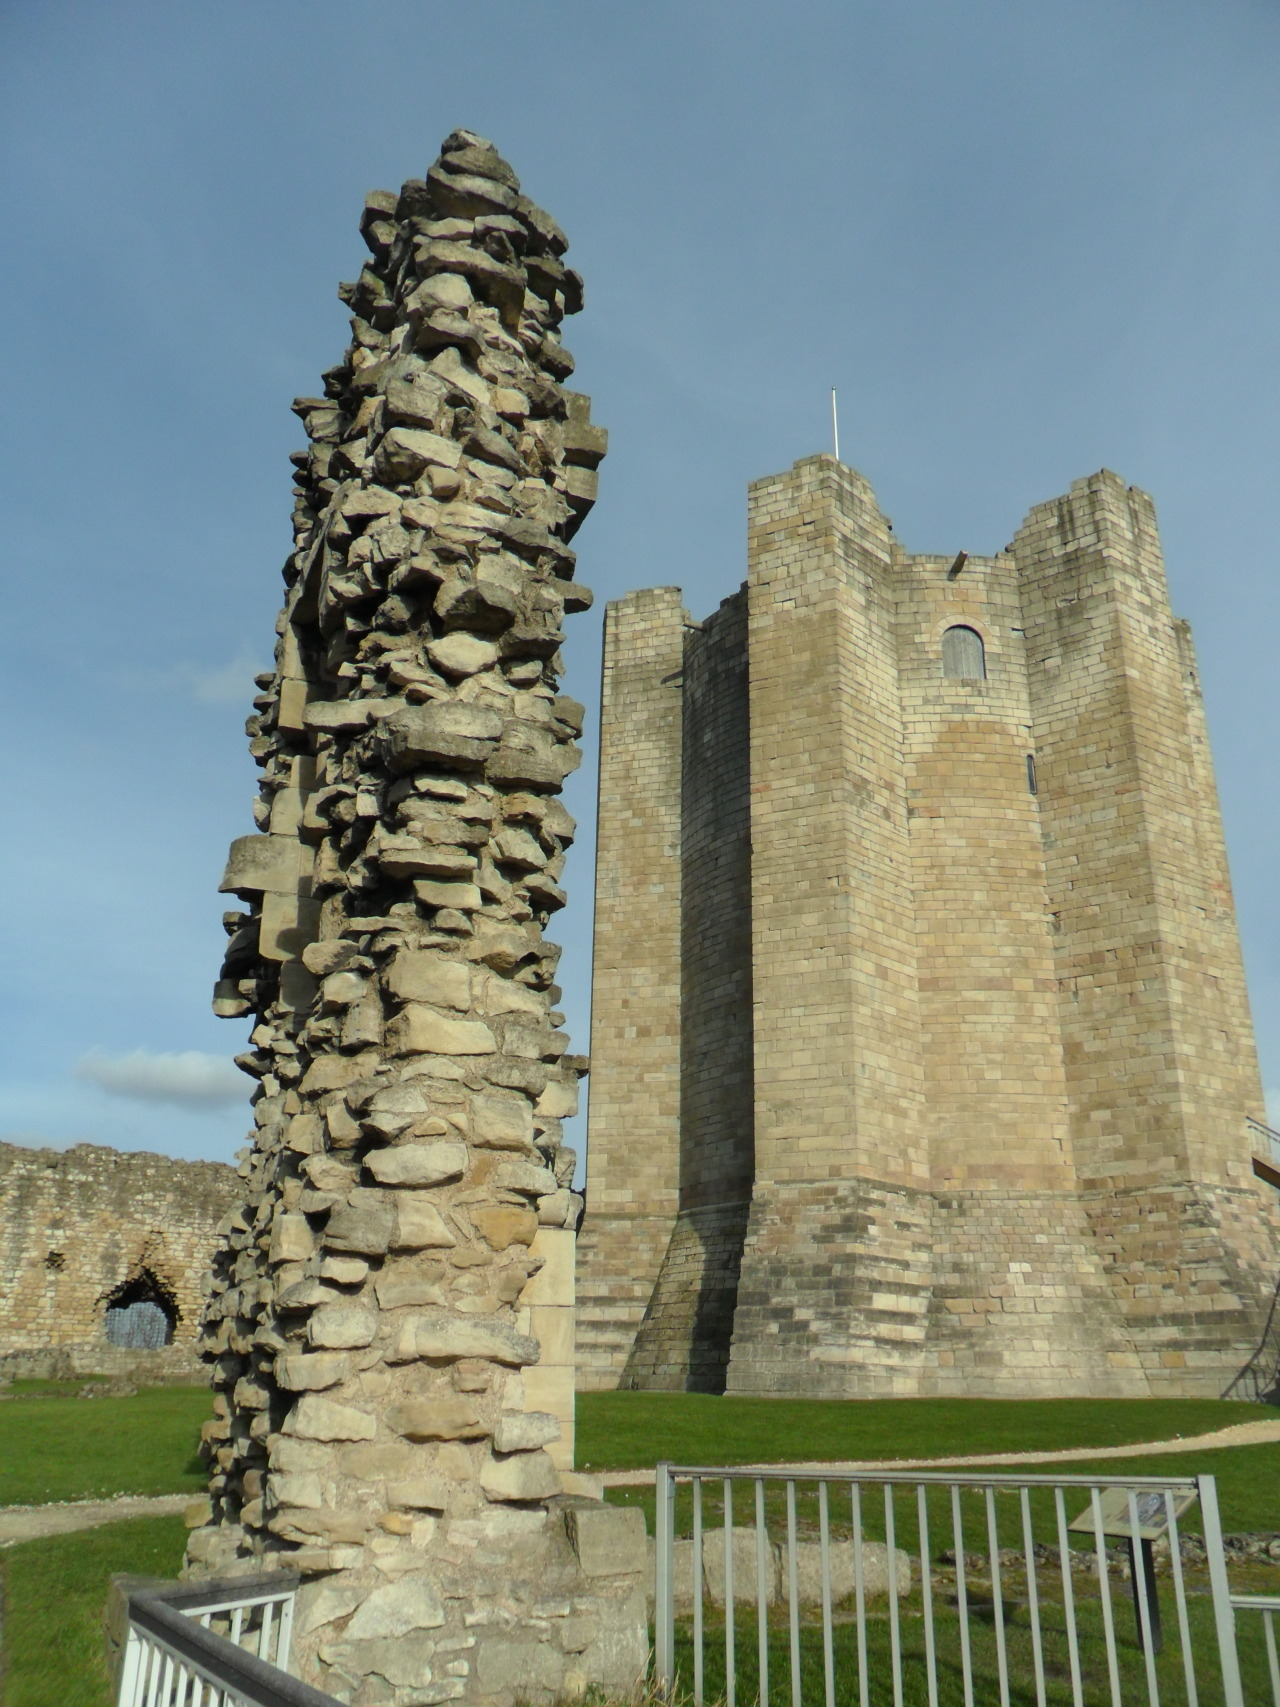 12th Century Keep and ruined walls of Conisbrough Castle, Doncaster, Yorkshire, England